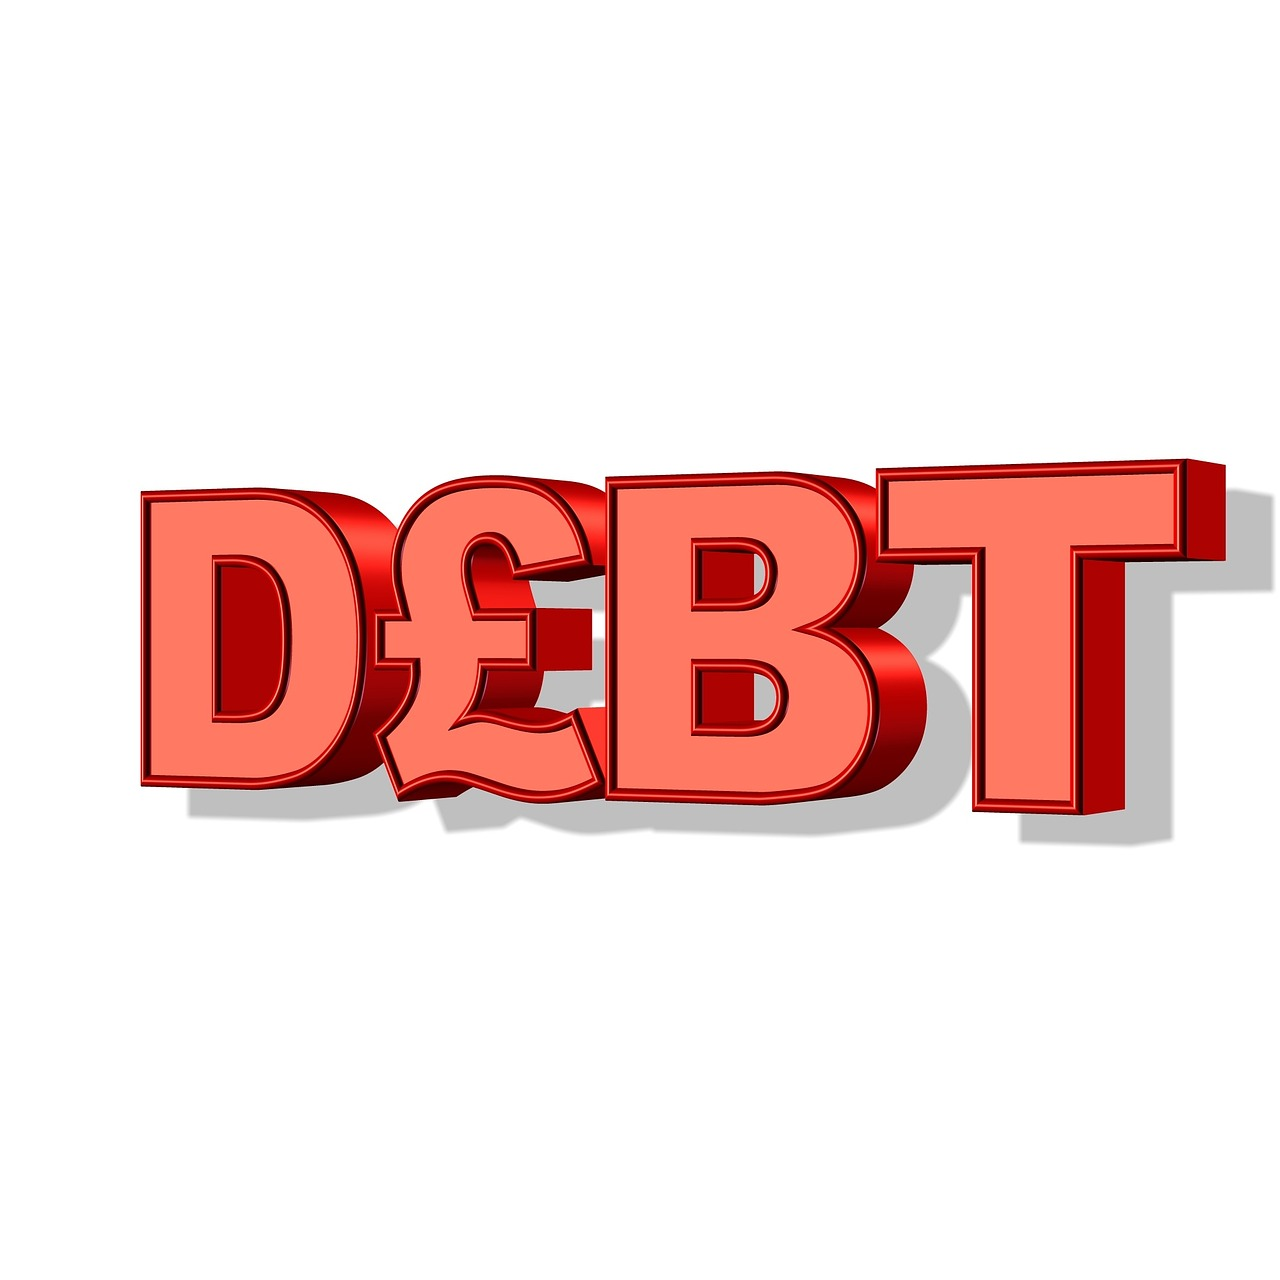 5 Smart tips to manage money and avoid debt problems